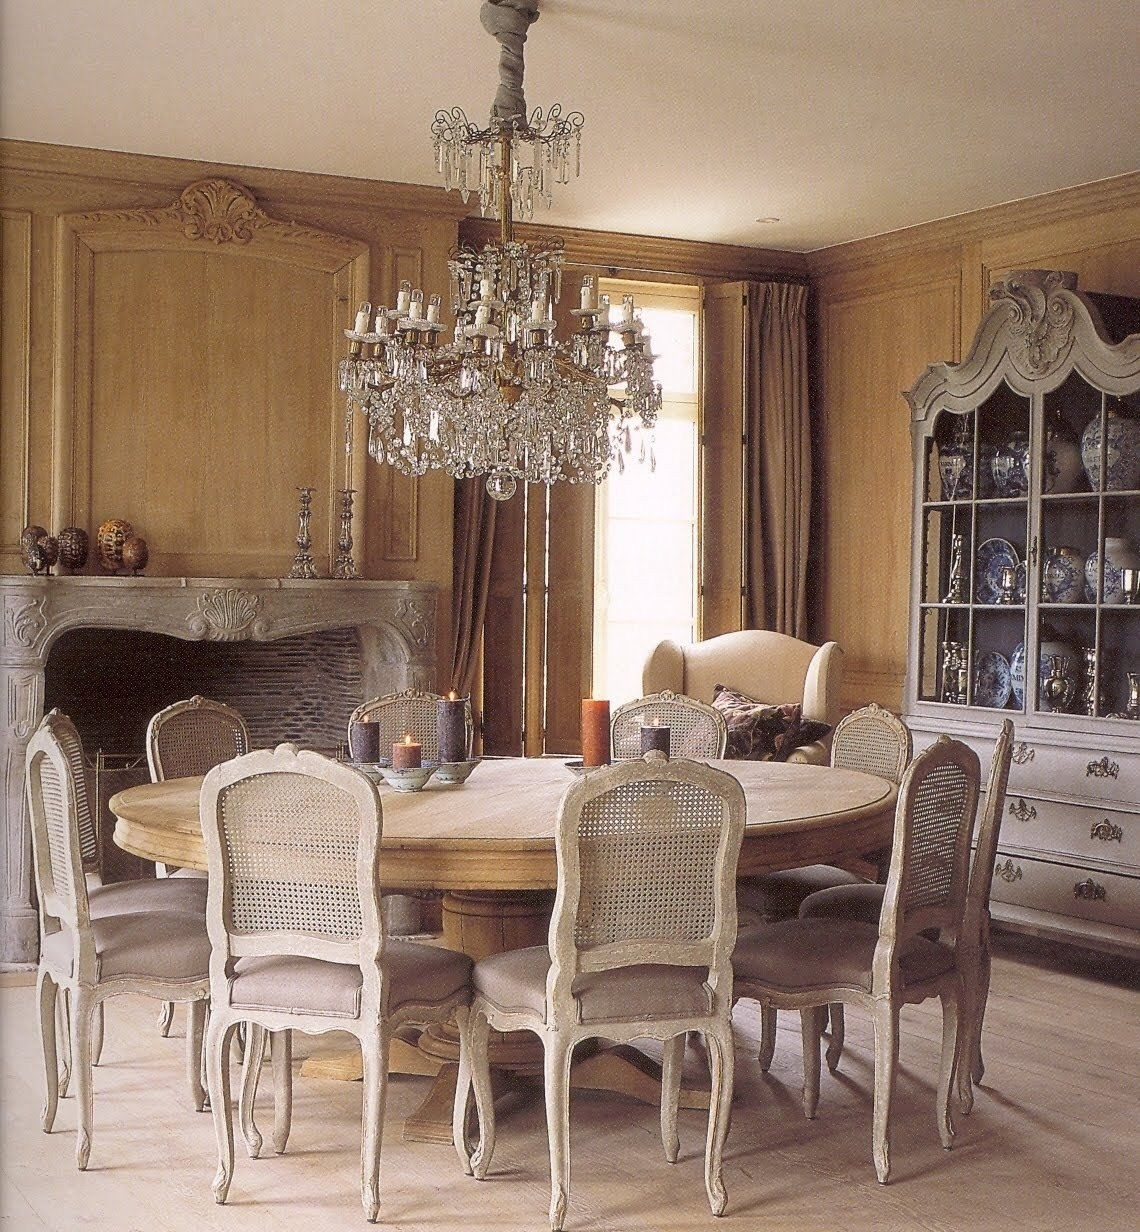 Beautiful Round Dining Room Table For 10